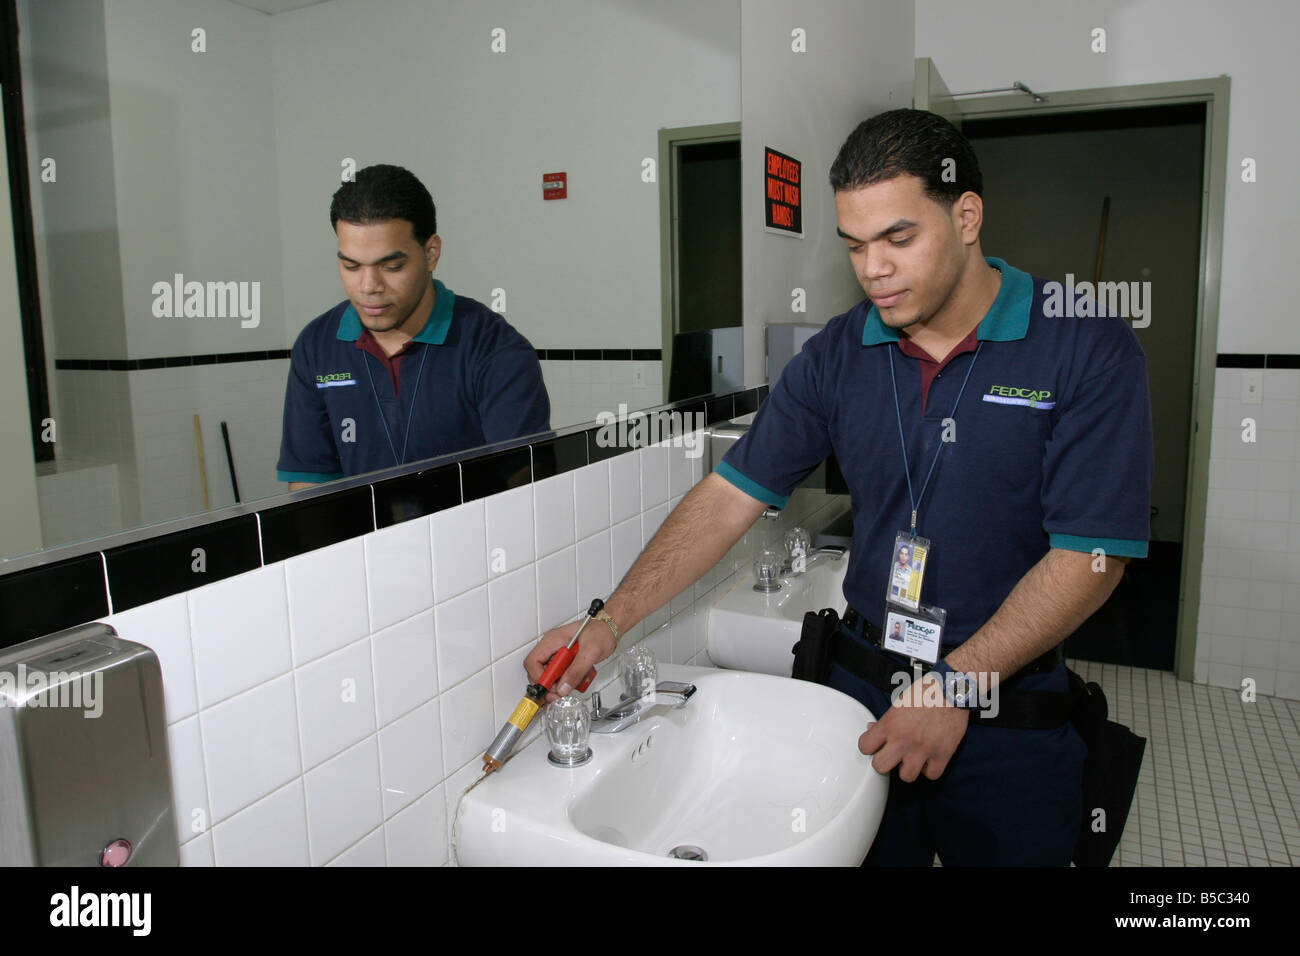 custodial worker does exterminator chores in a bathroom stock custodial worker does exterminator chores in a bathroom